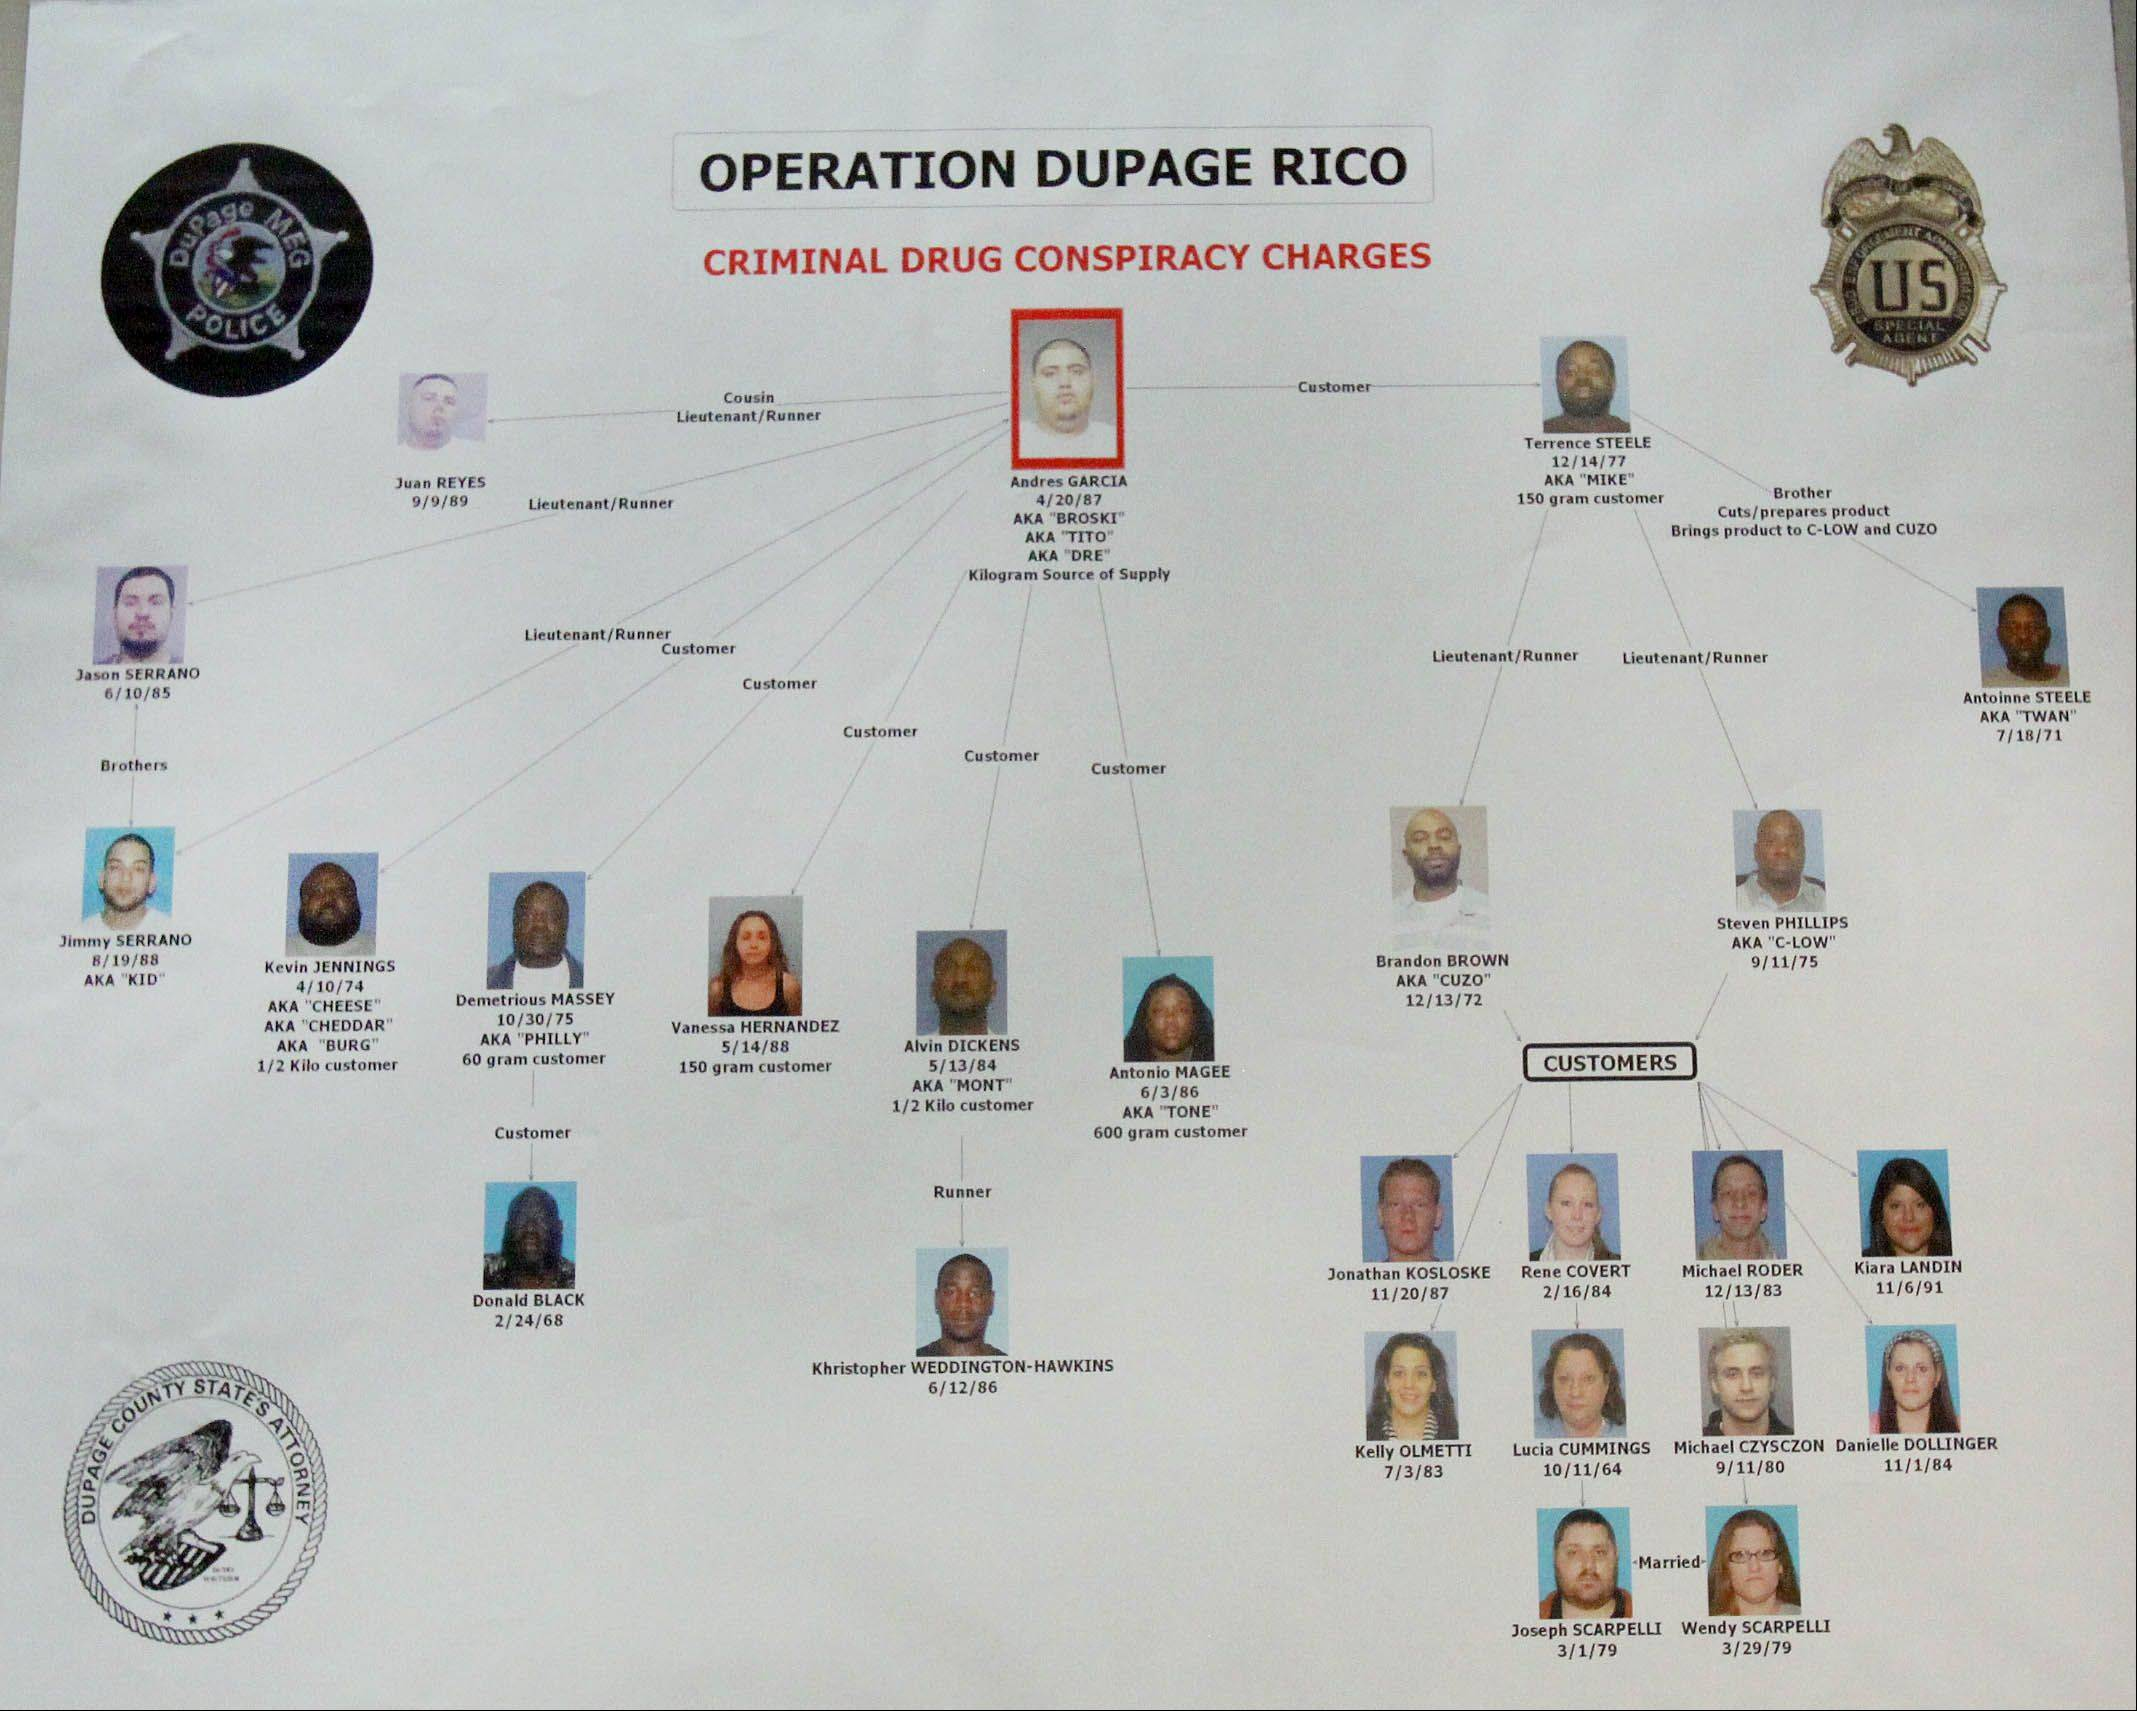 Authorities provided charts outlining the alleged relationships between people arrested in a heroin conspiracy case announced Wednesday in DuPage County.